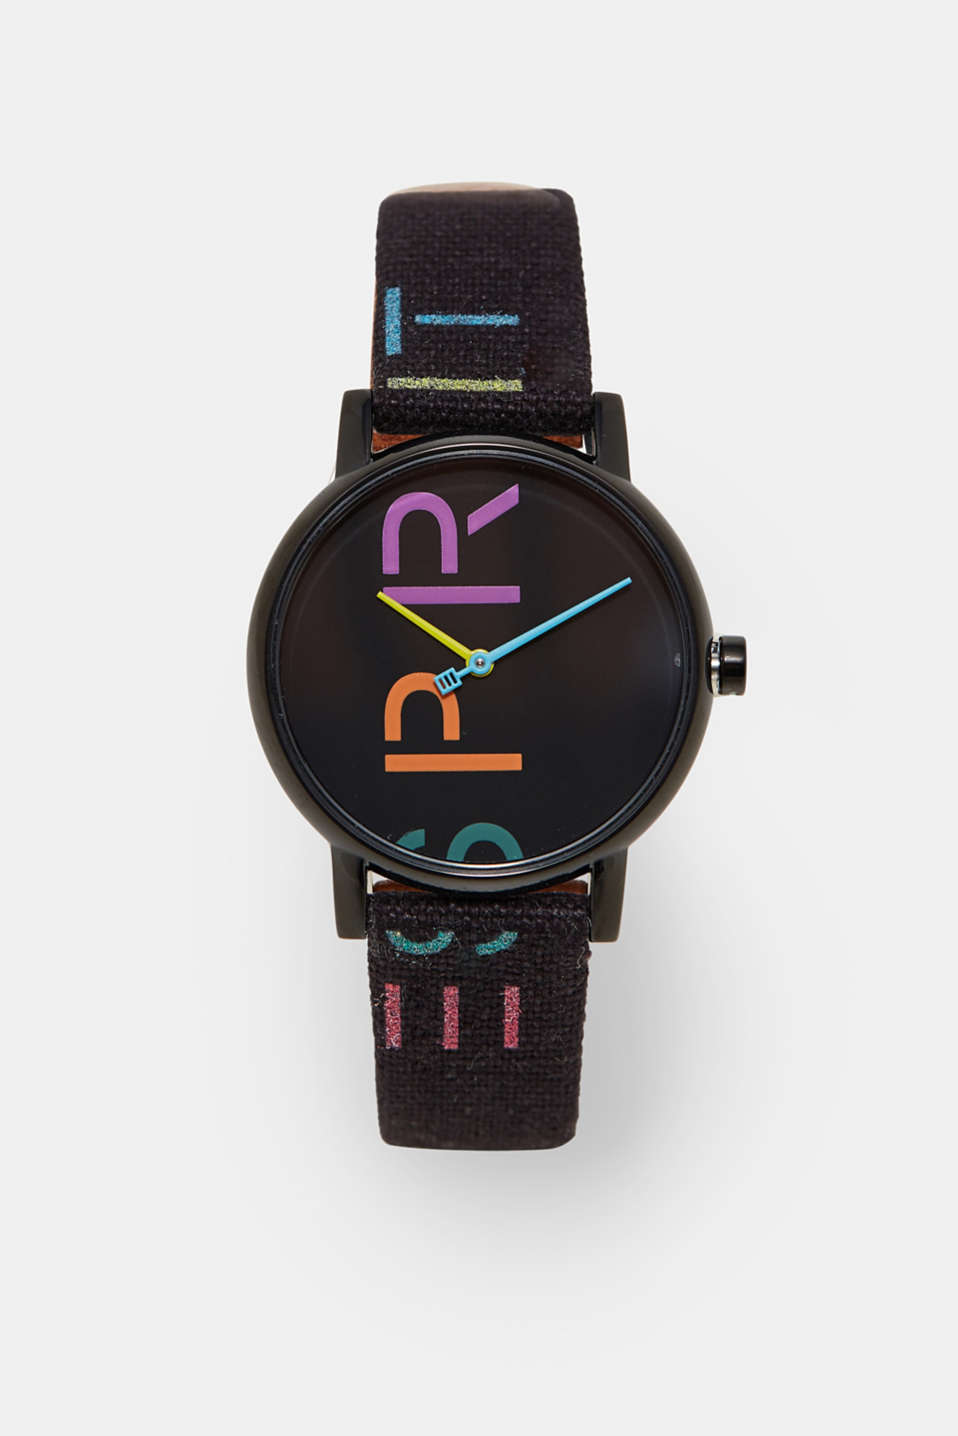 Go logo! Both the dial and strap sport a logo print.